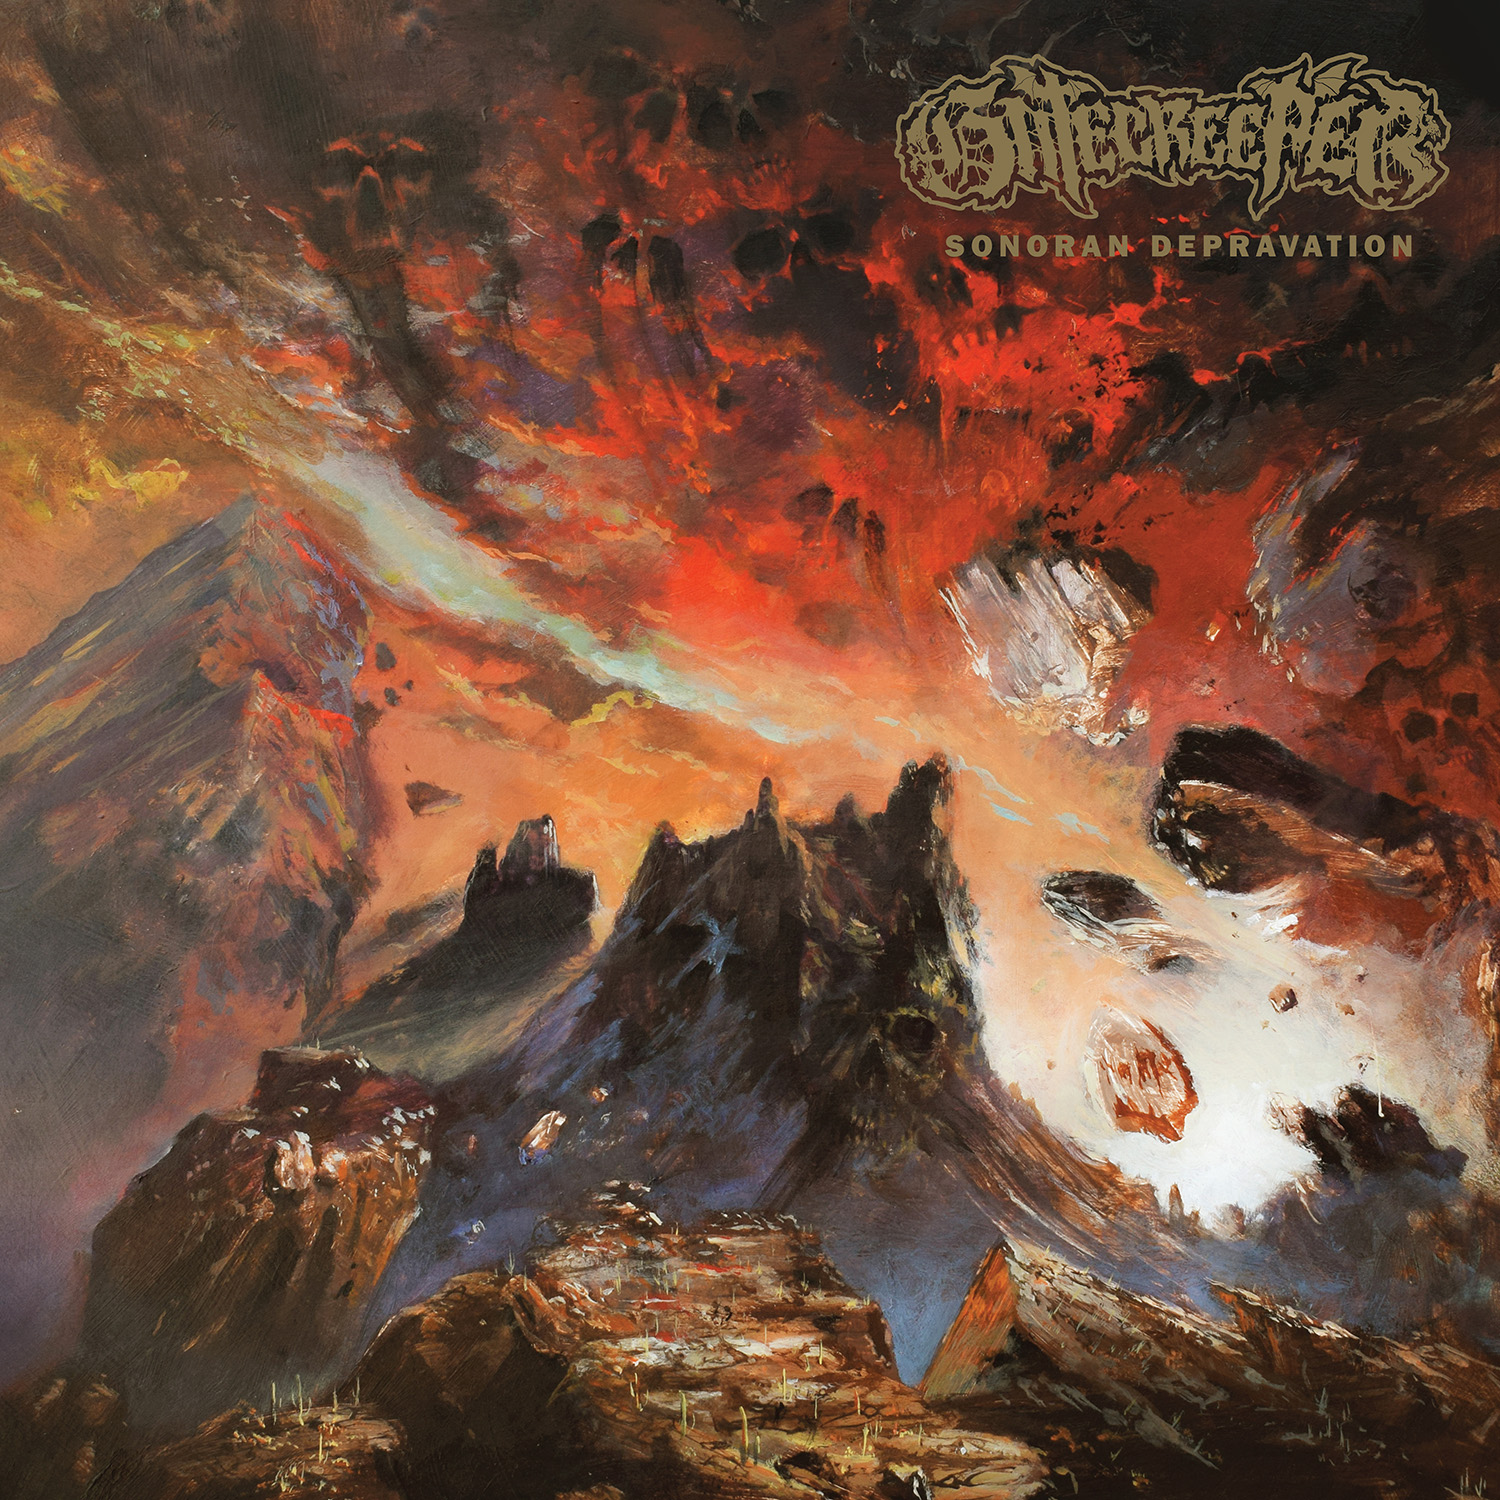 GATECREEPER Sonoran Depravation - Vinyl LP (green)